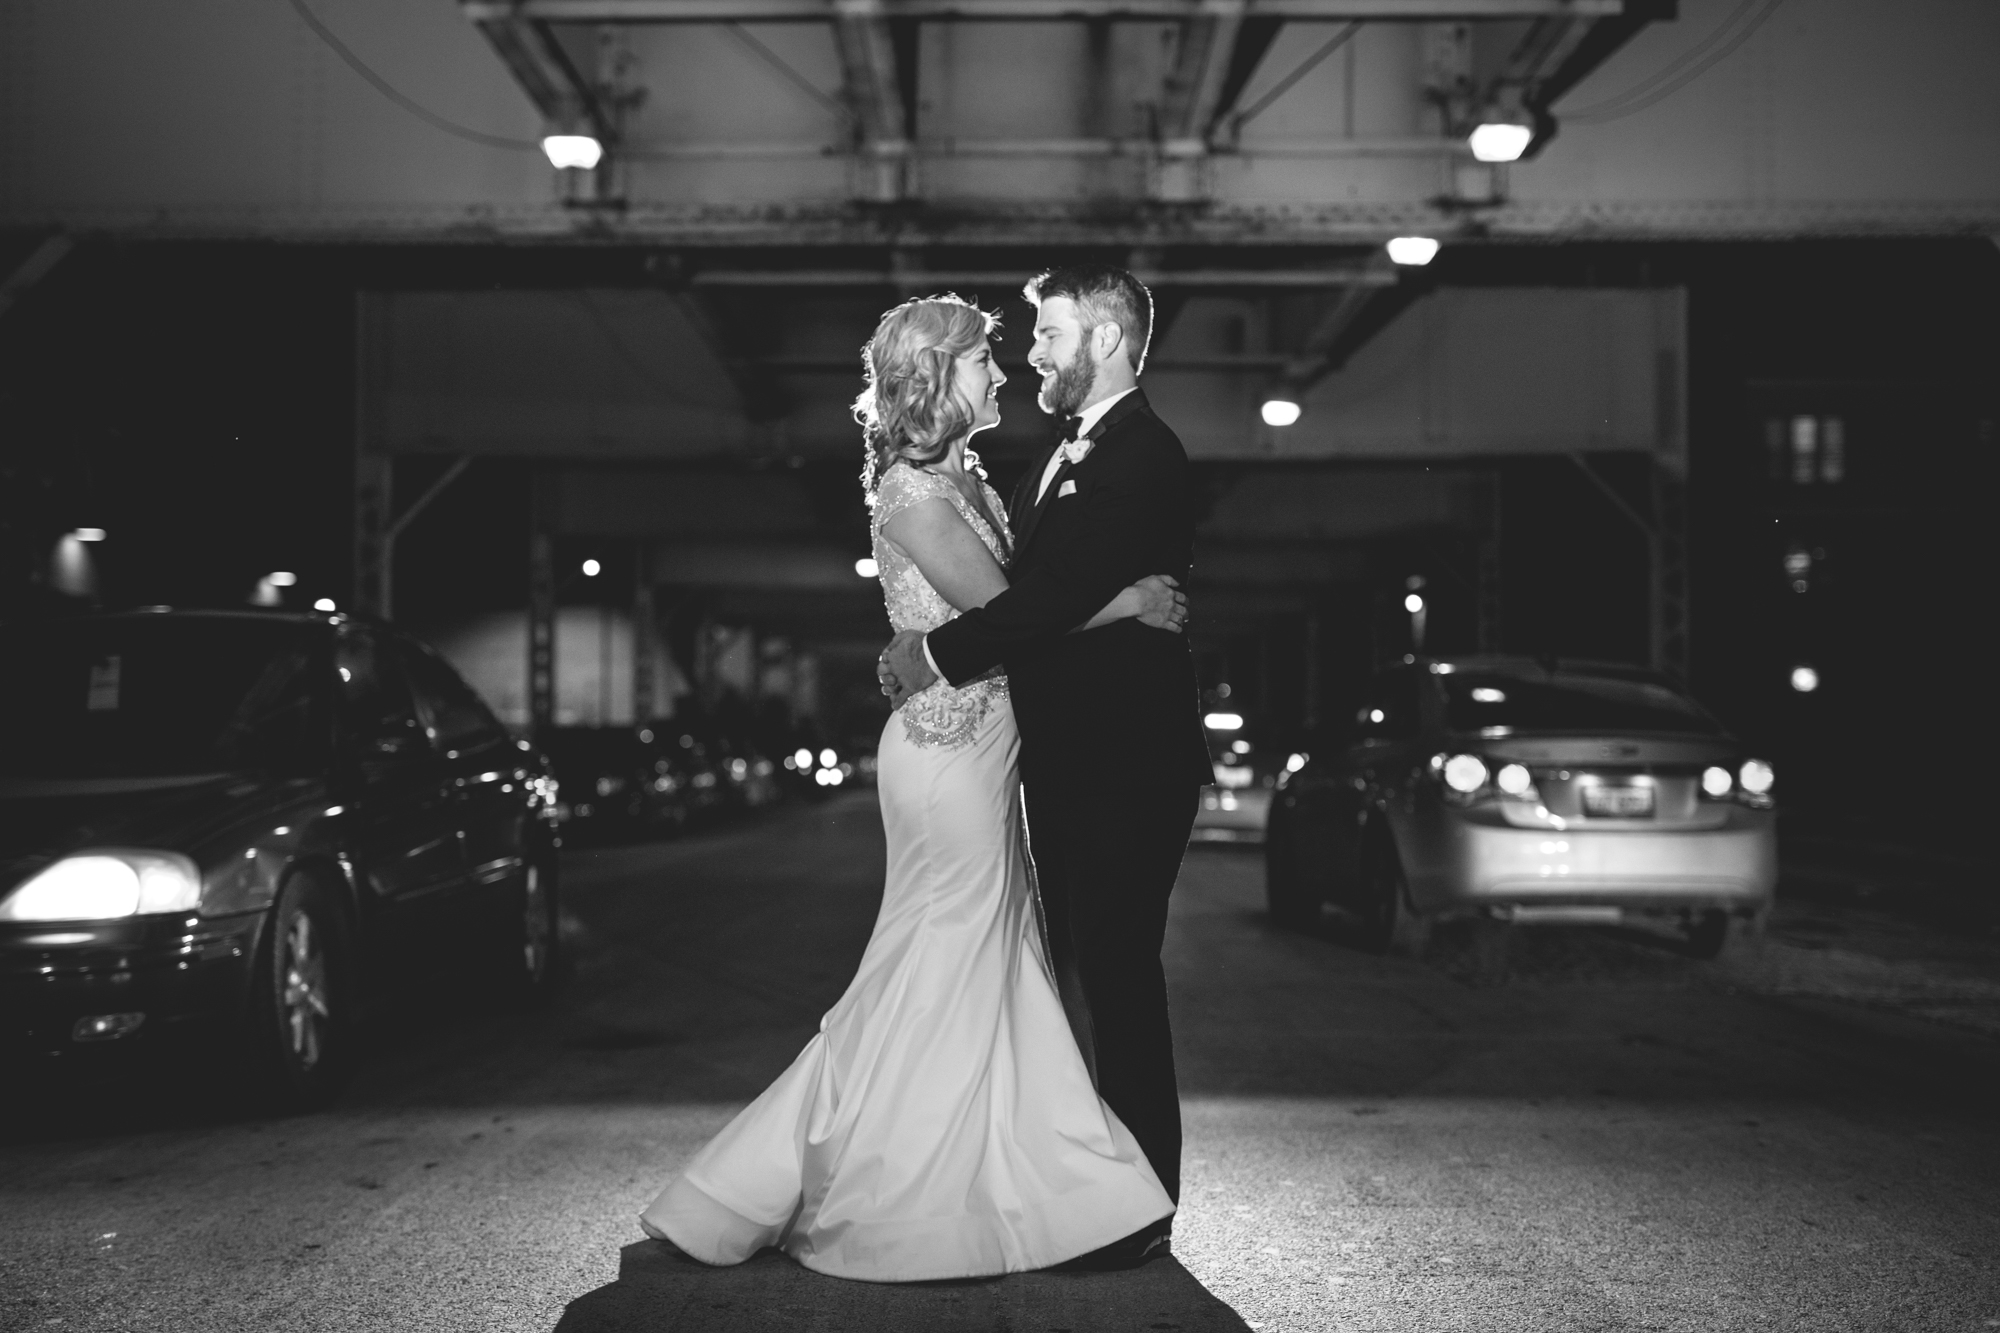 night-time-wedding-photography.jpg